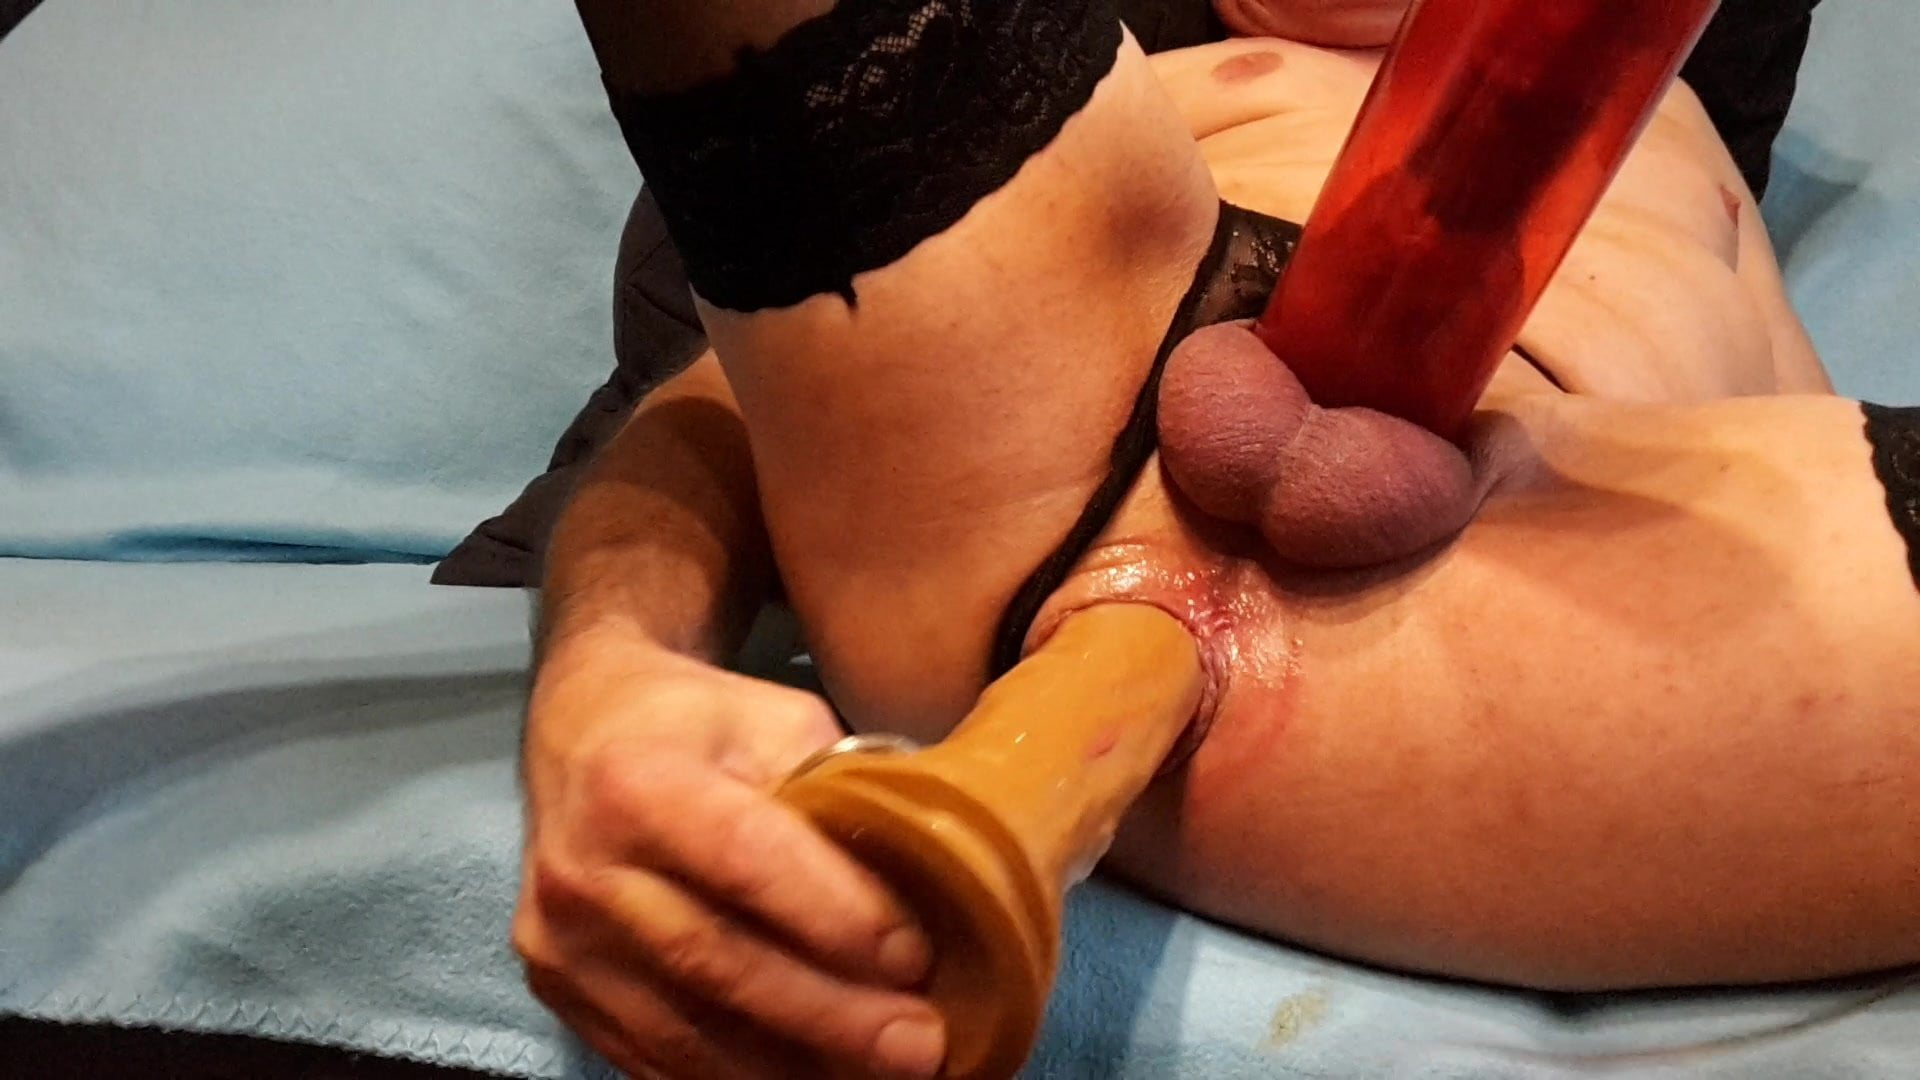 Cock pumping and dildo assfucking